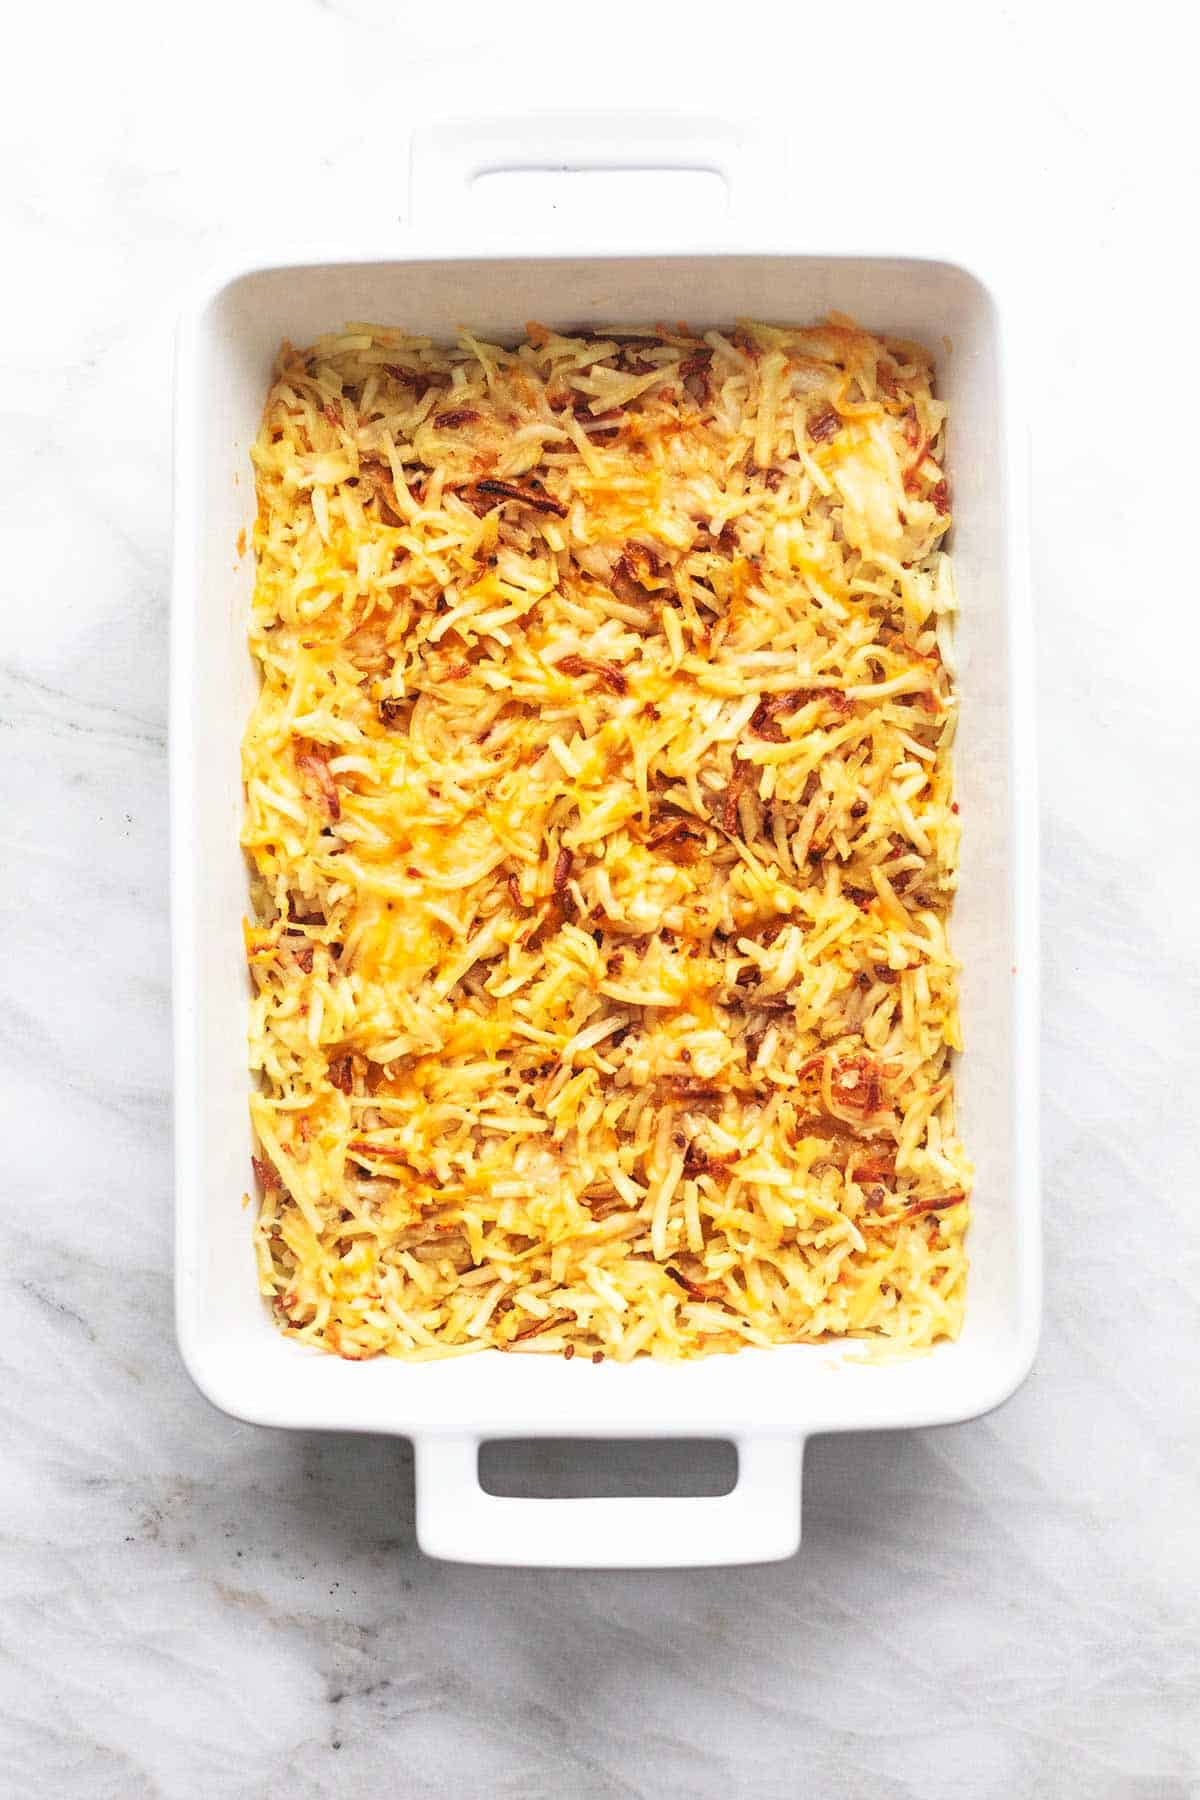 top view of cooked hash browns in a baking pan.